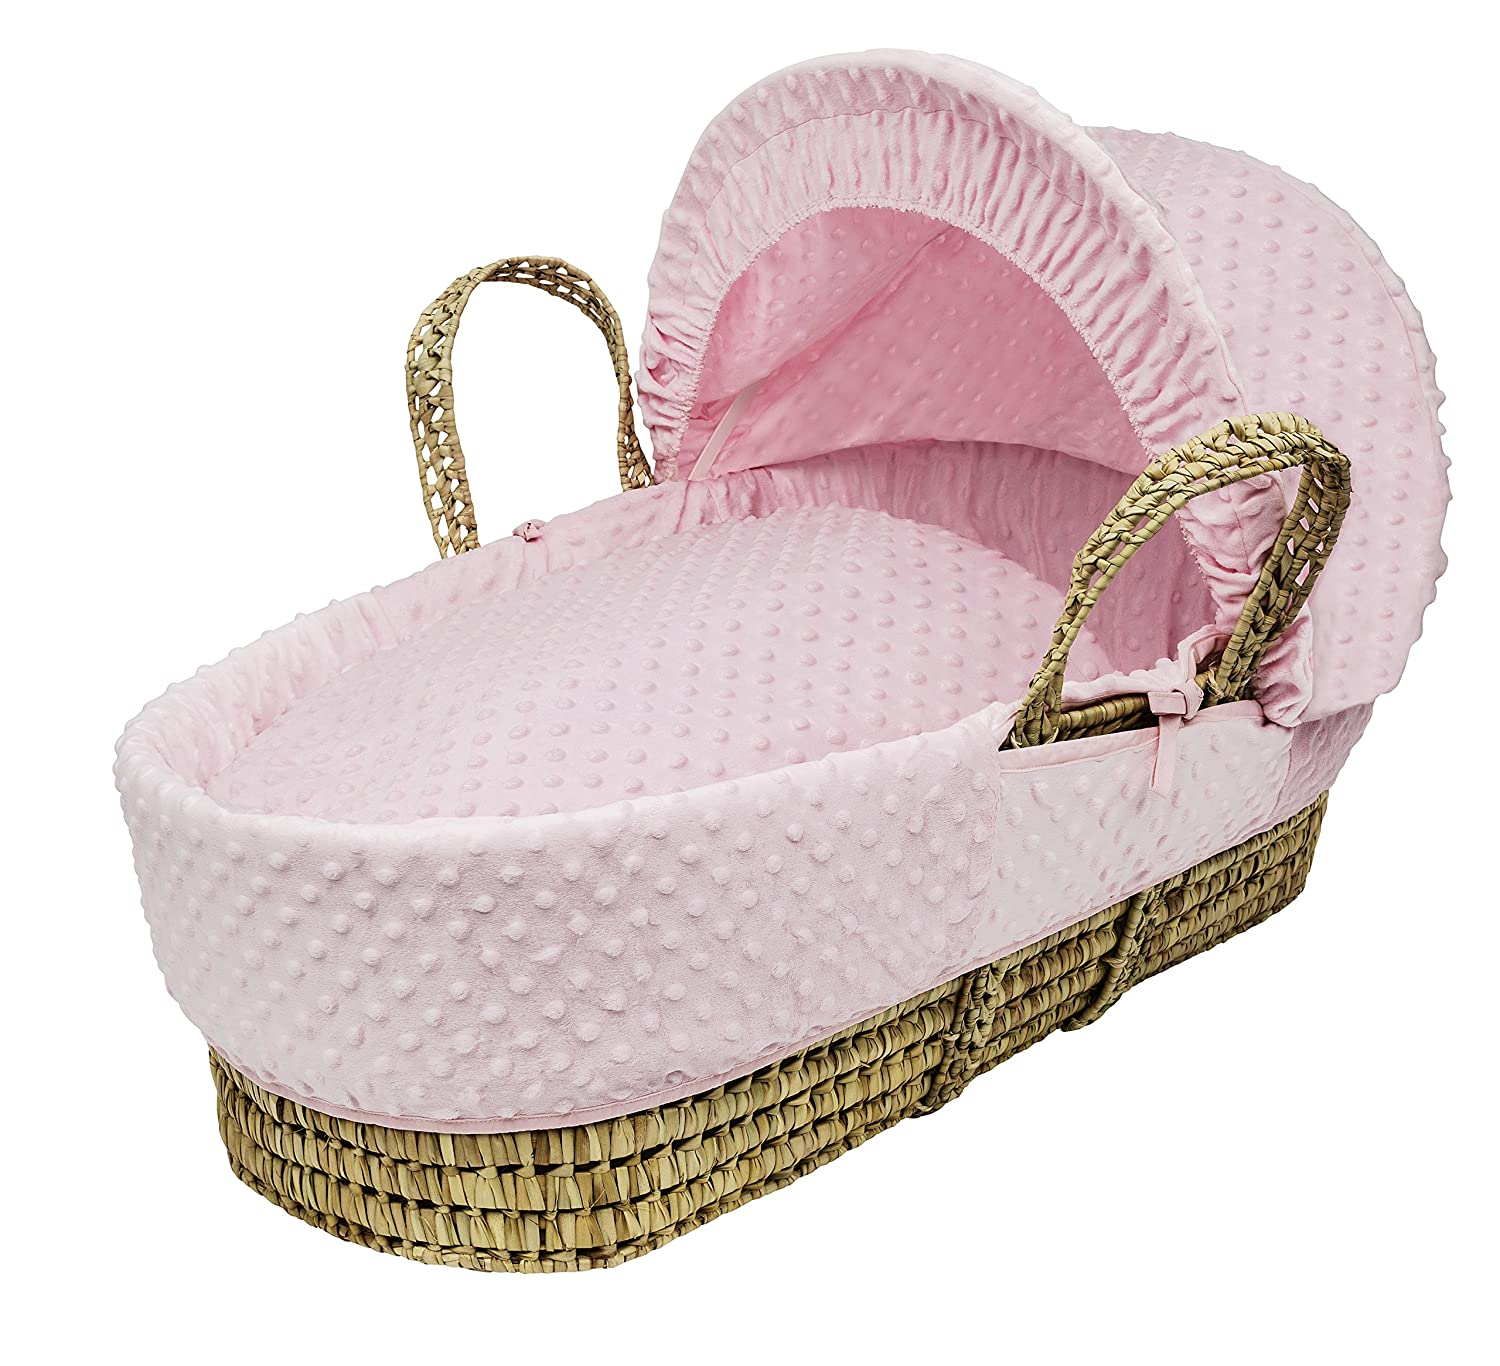 Kinder Valley Palm Moses Basket, Pink Dimple 10045